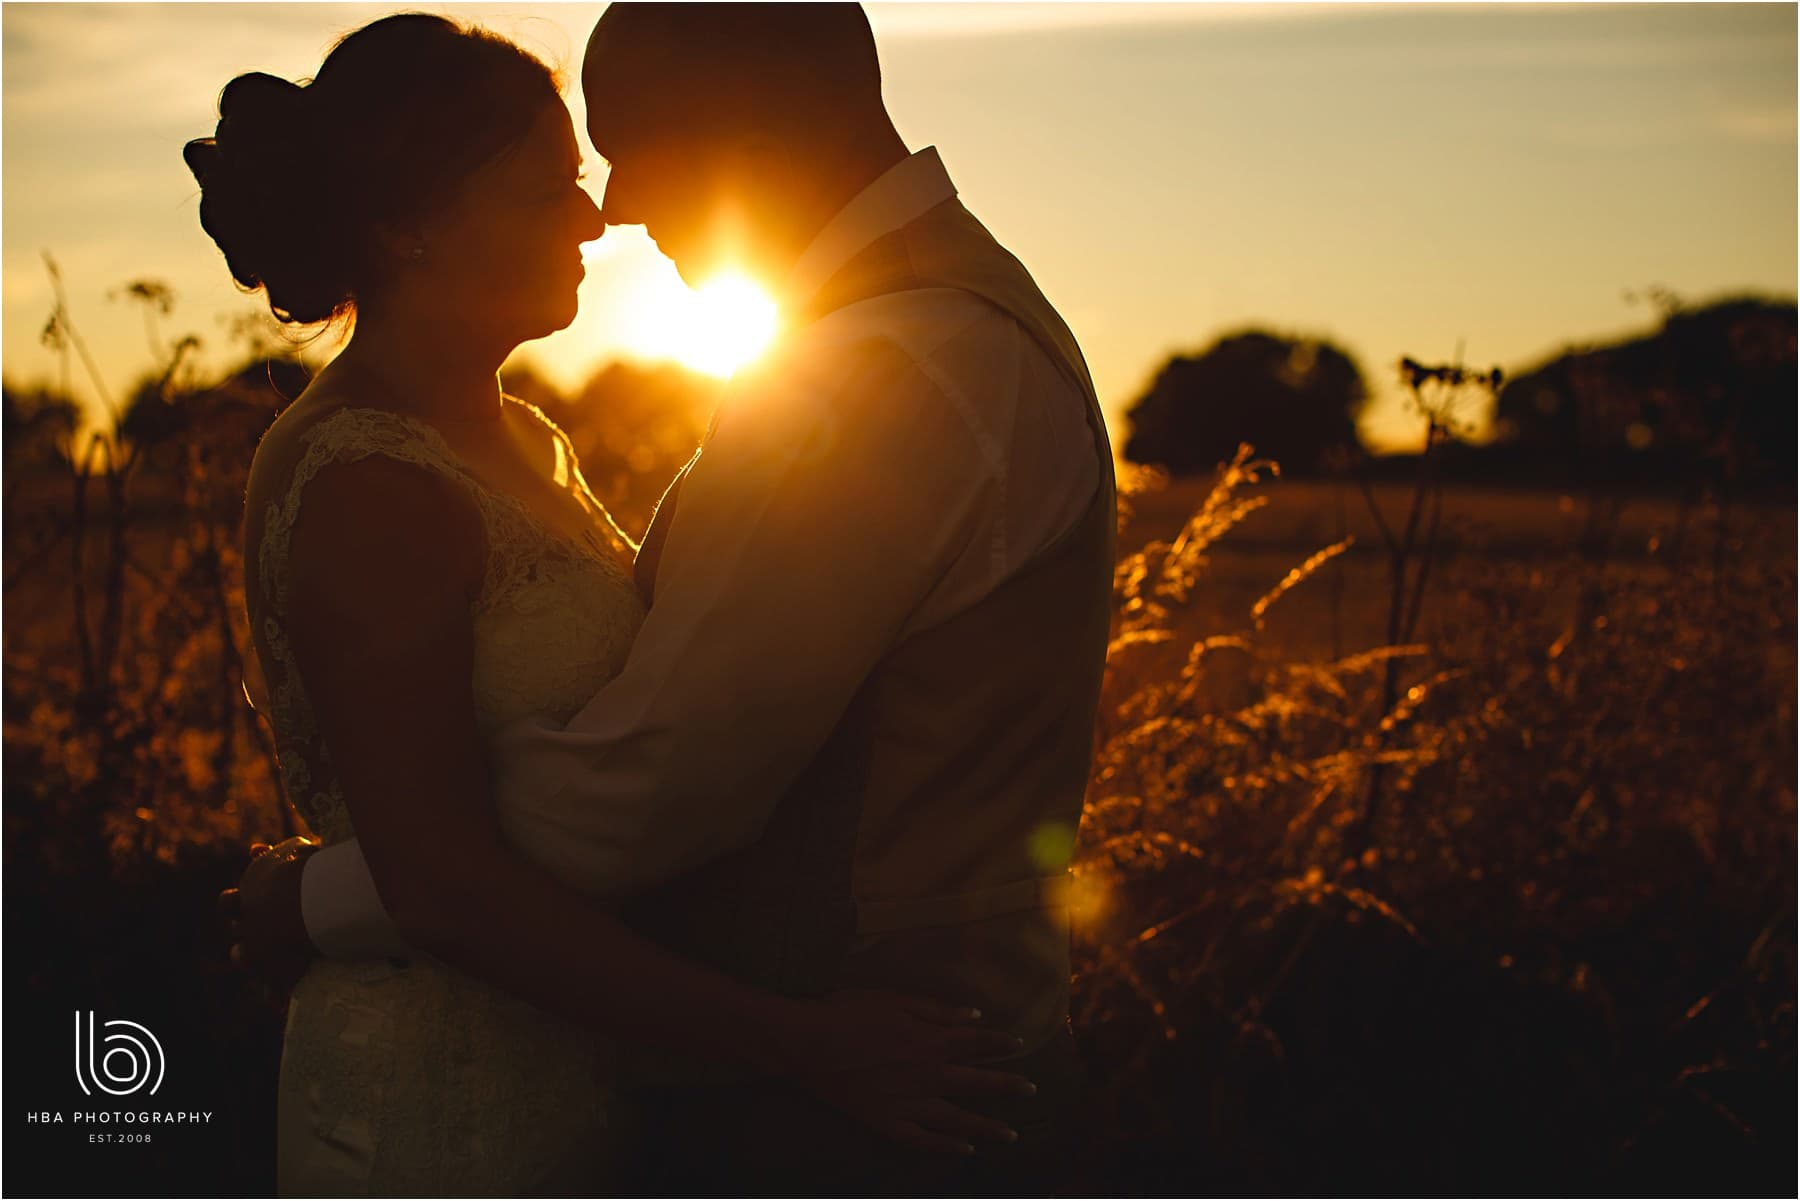 the bride & groom in a sunset